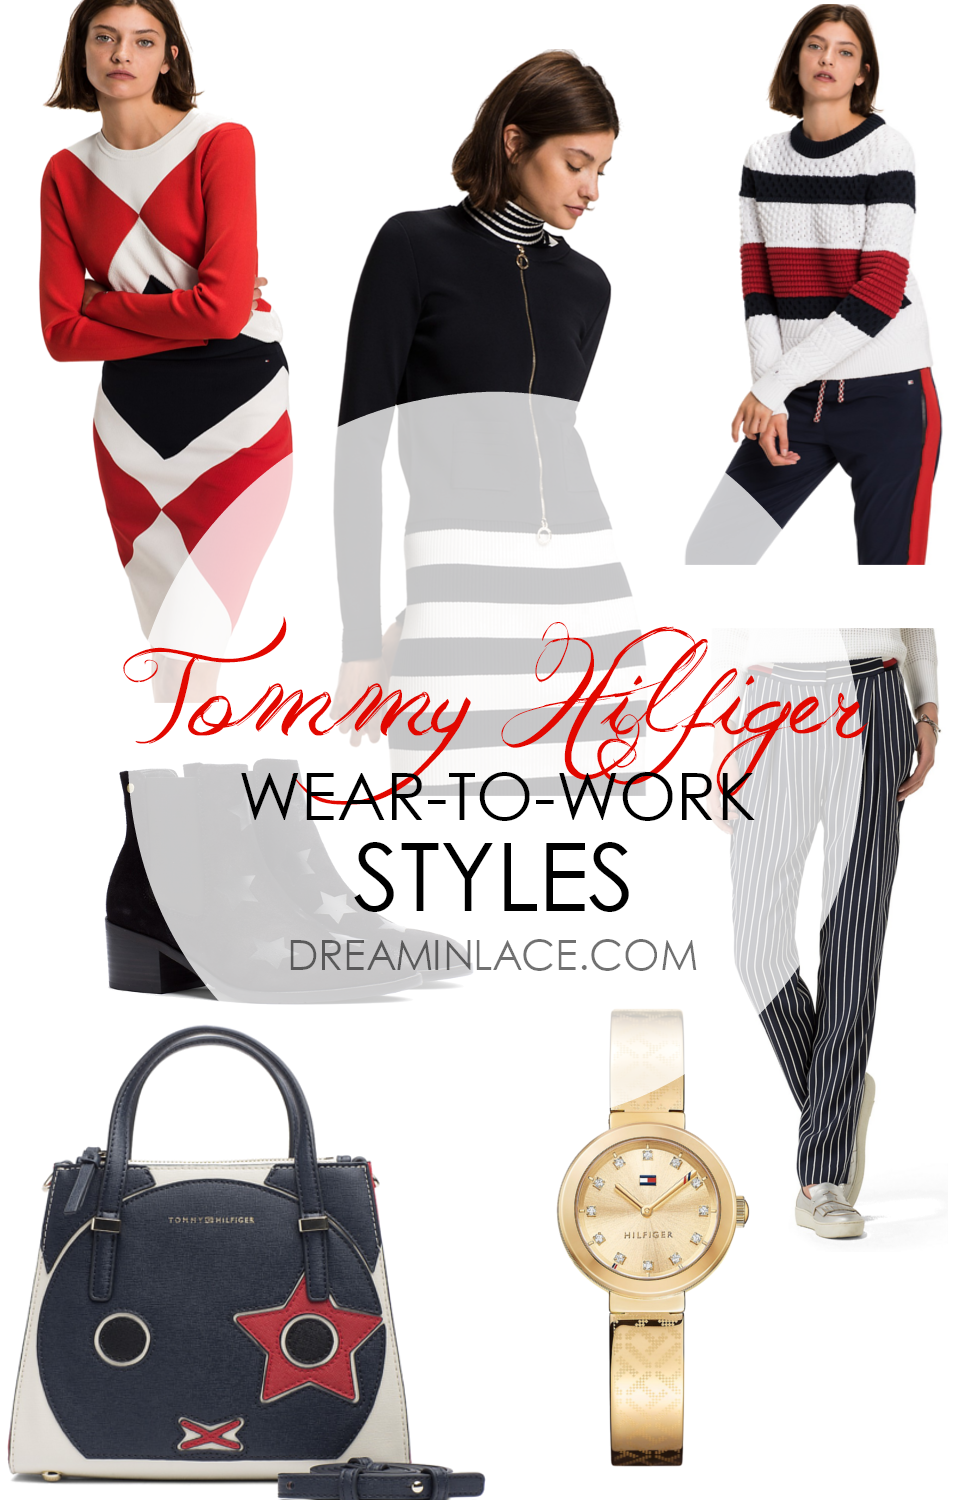 Tommy Hilfiger Makes Dressing for Work More Fun